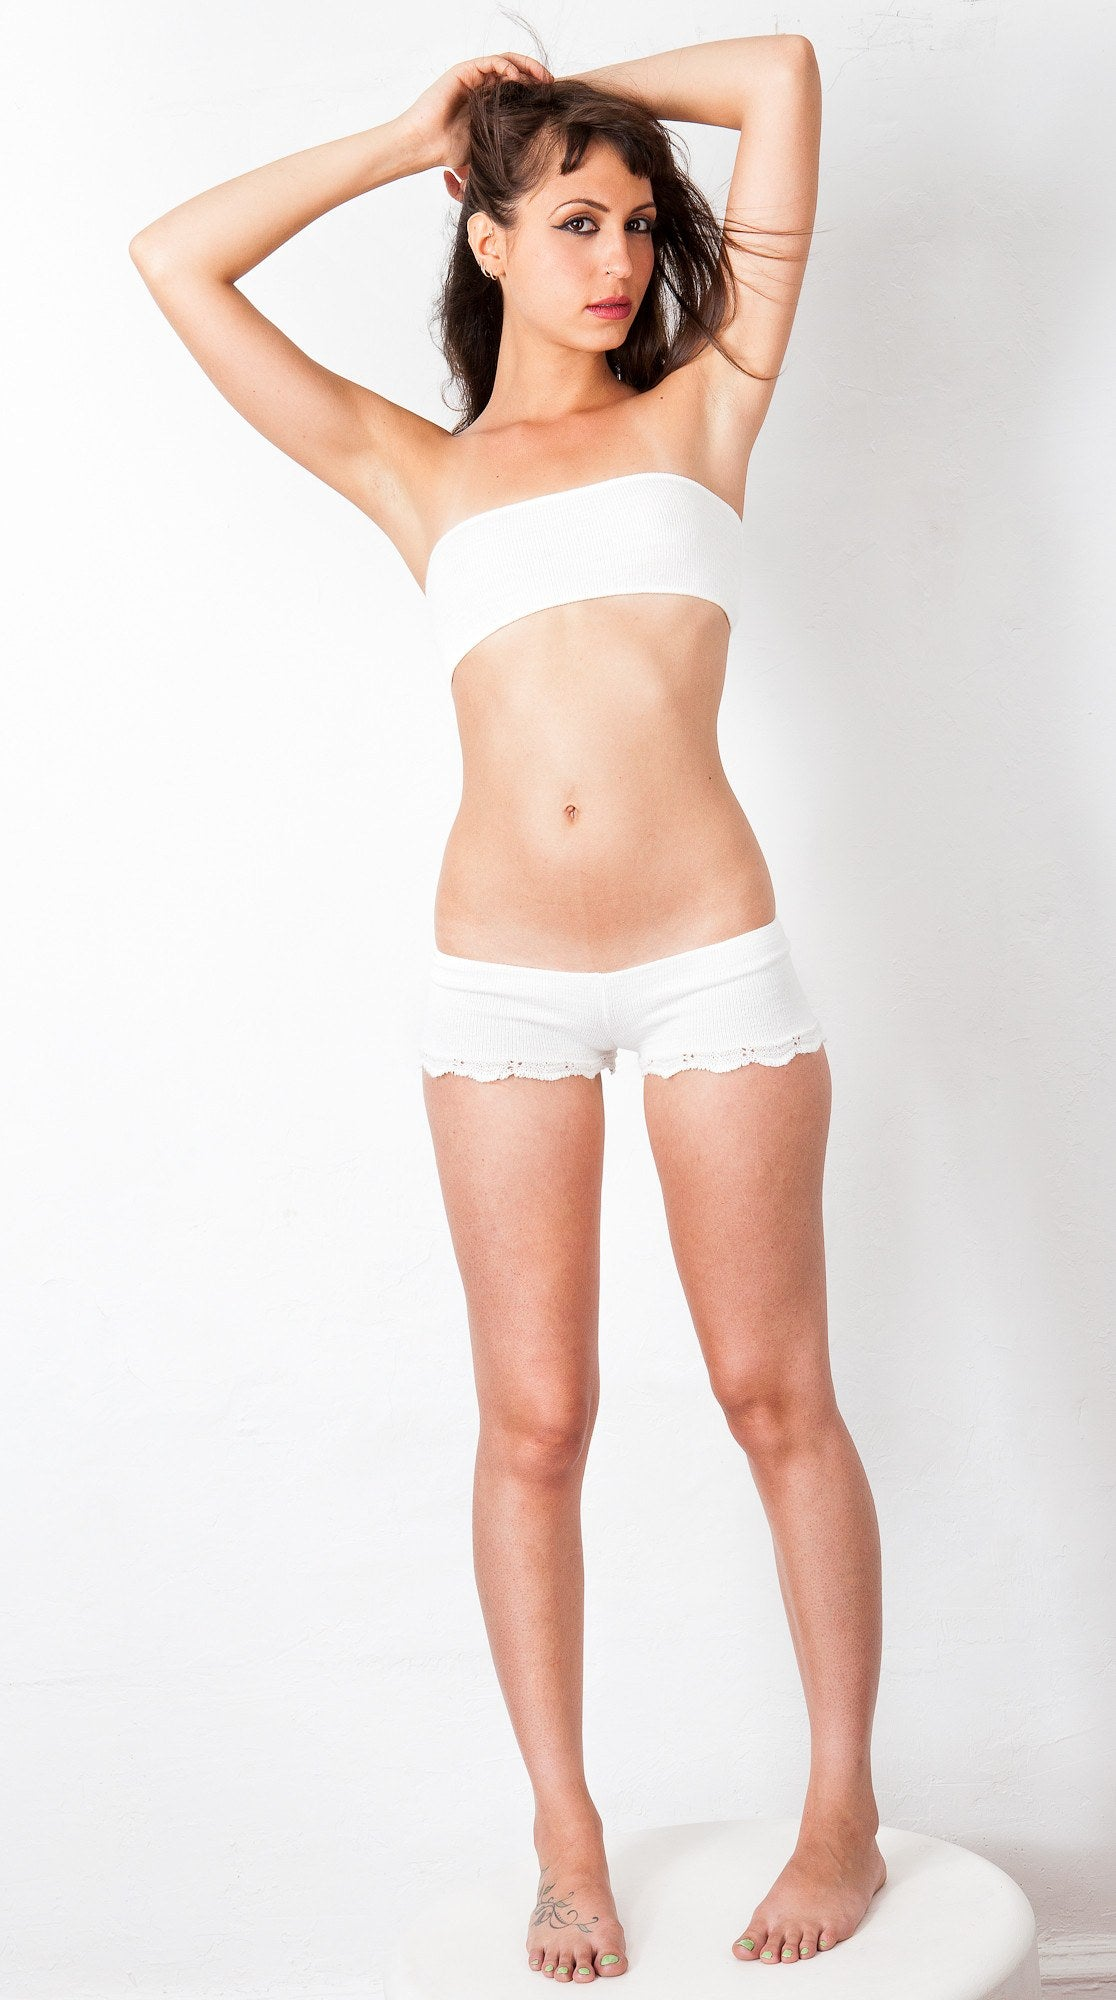 Lace Trimmed Cheeky Bikini Shorts & Bare Belly Mini Tube Top KD dance Dancewear Made In USA @KDdanceNewYork #MadeInUSA - 6